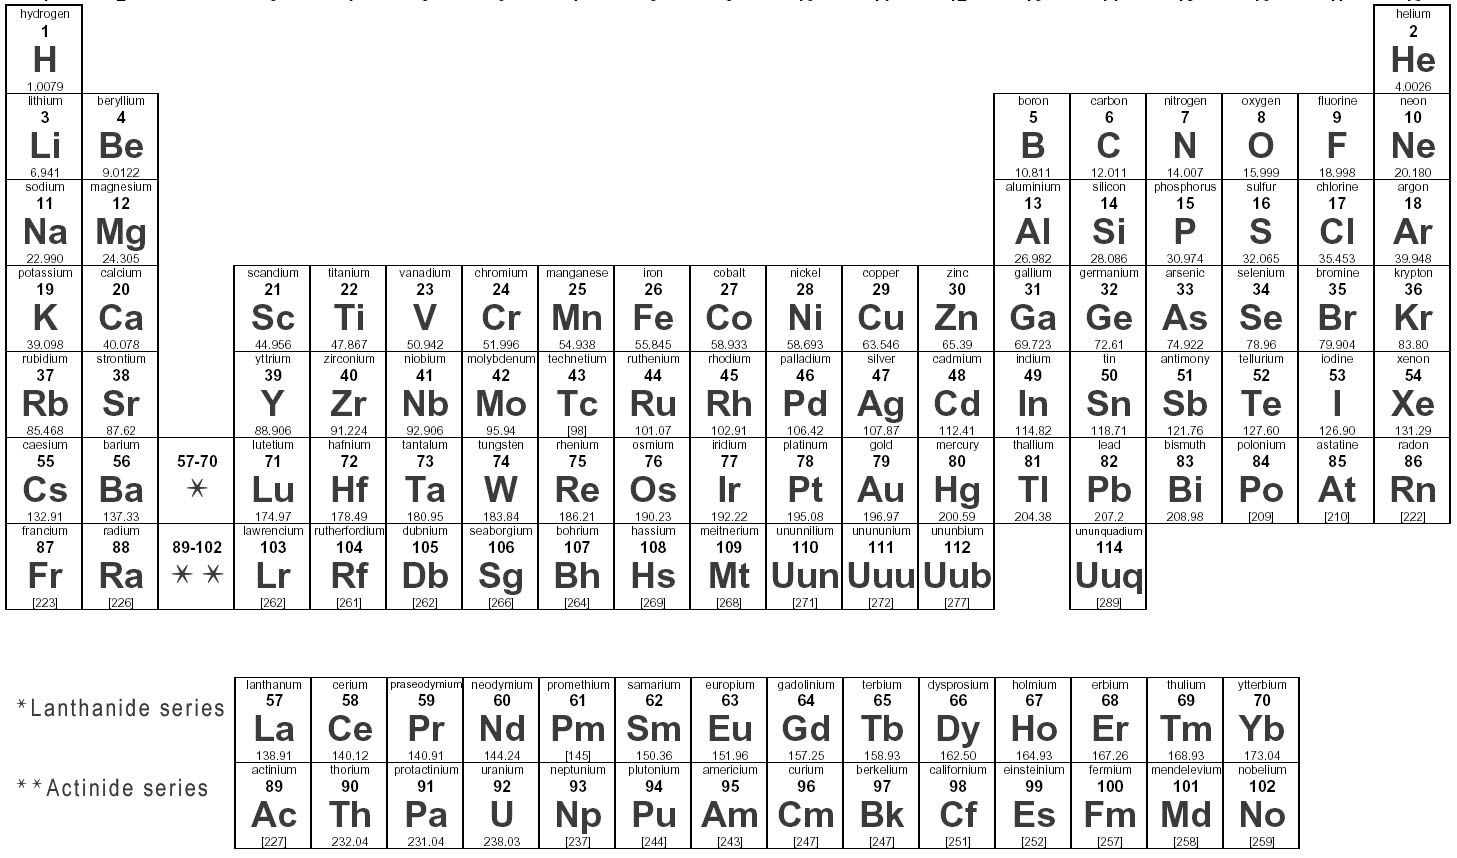 astonishing pt element periodic table minimalis pictures best astonishing pt element periodic table minimalis pictures best